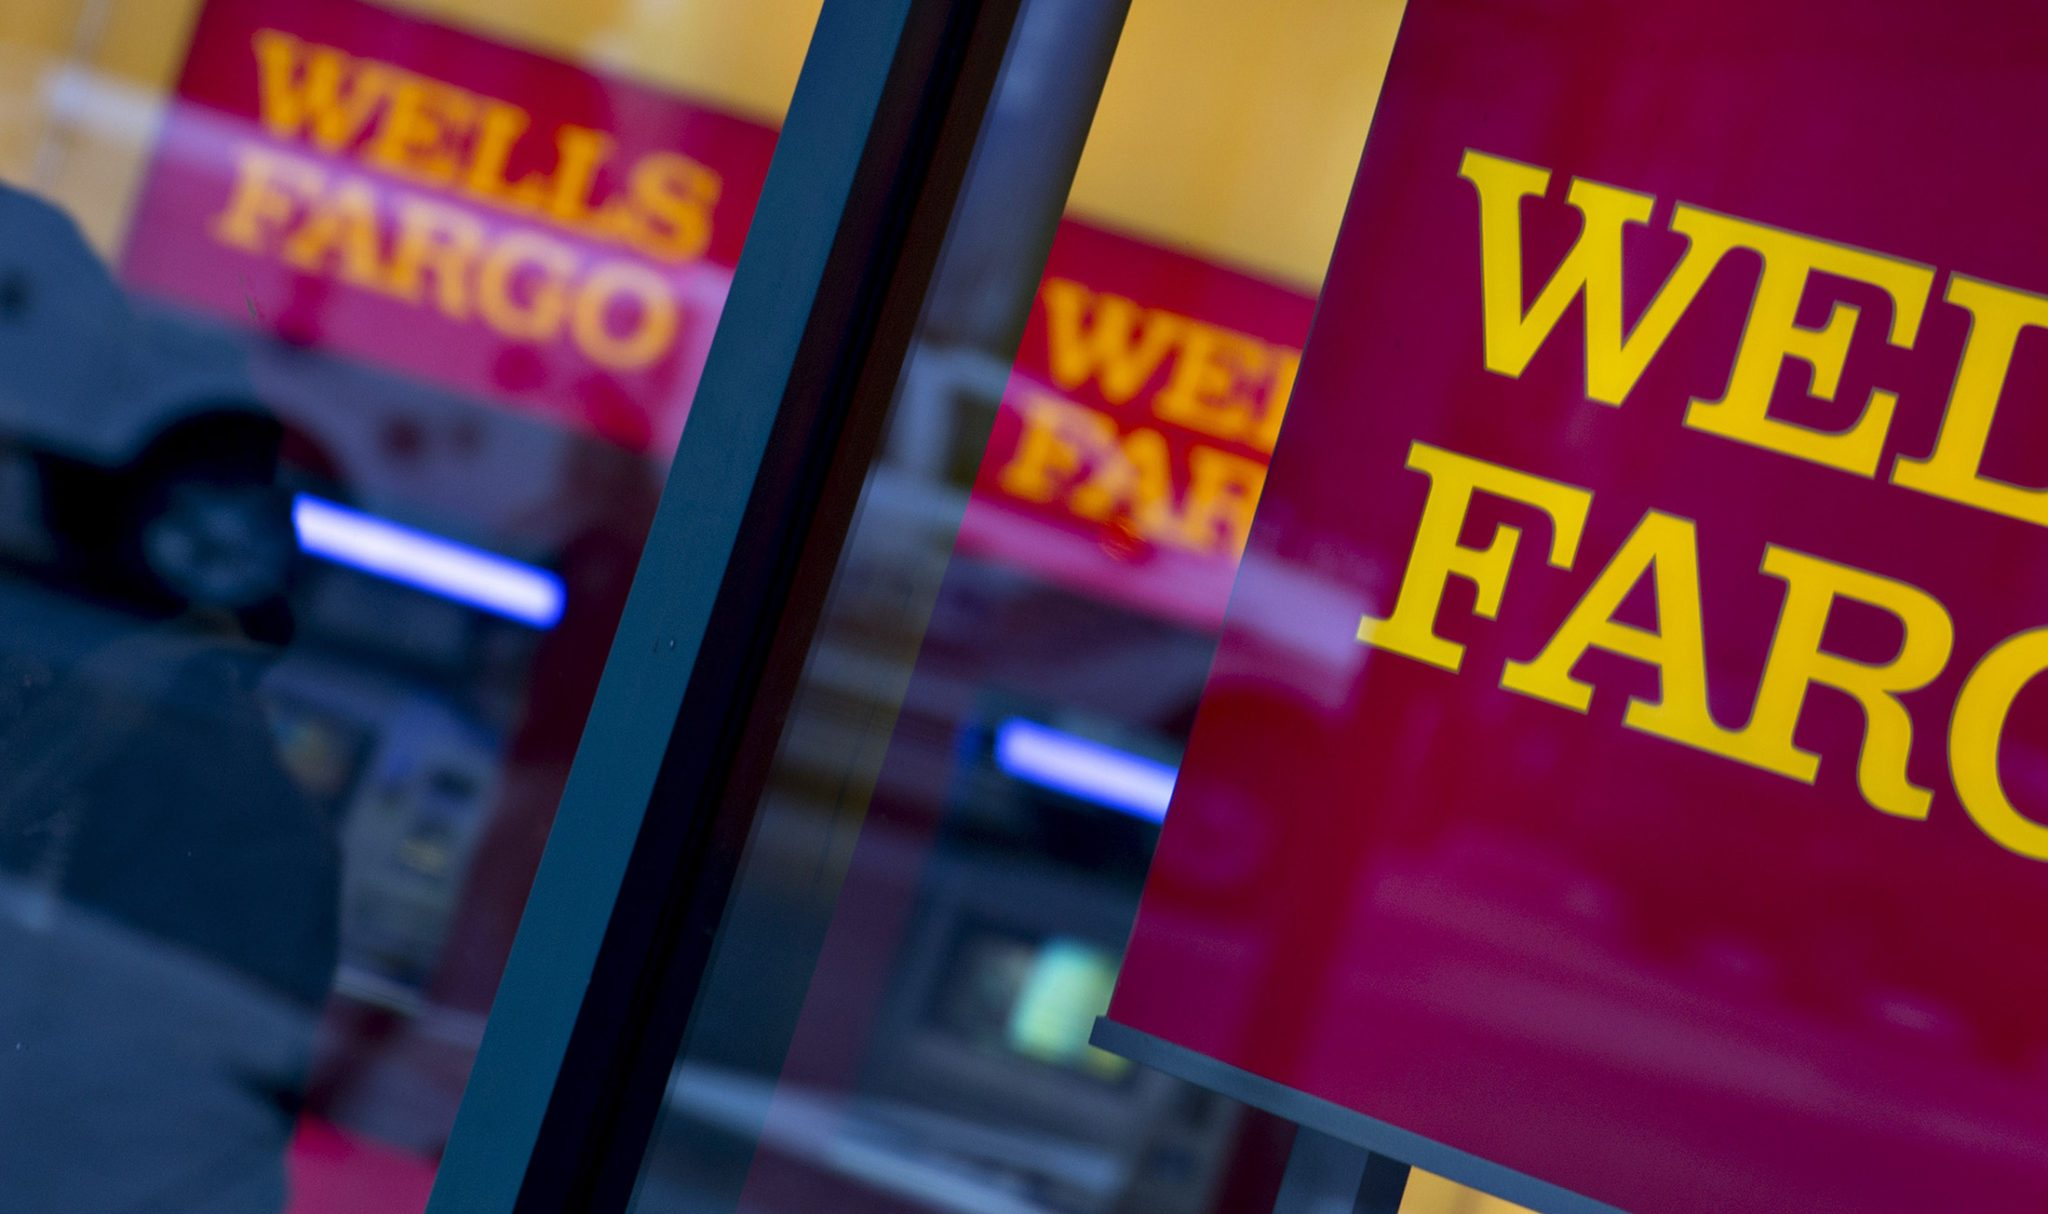 Wells Fargo Wants Claims Over Fake Accounts Decided Out of Court